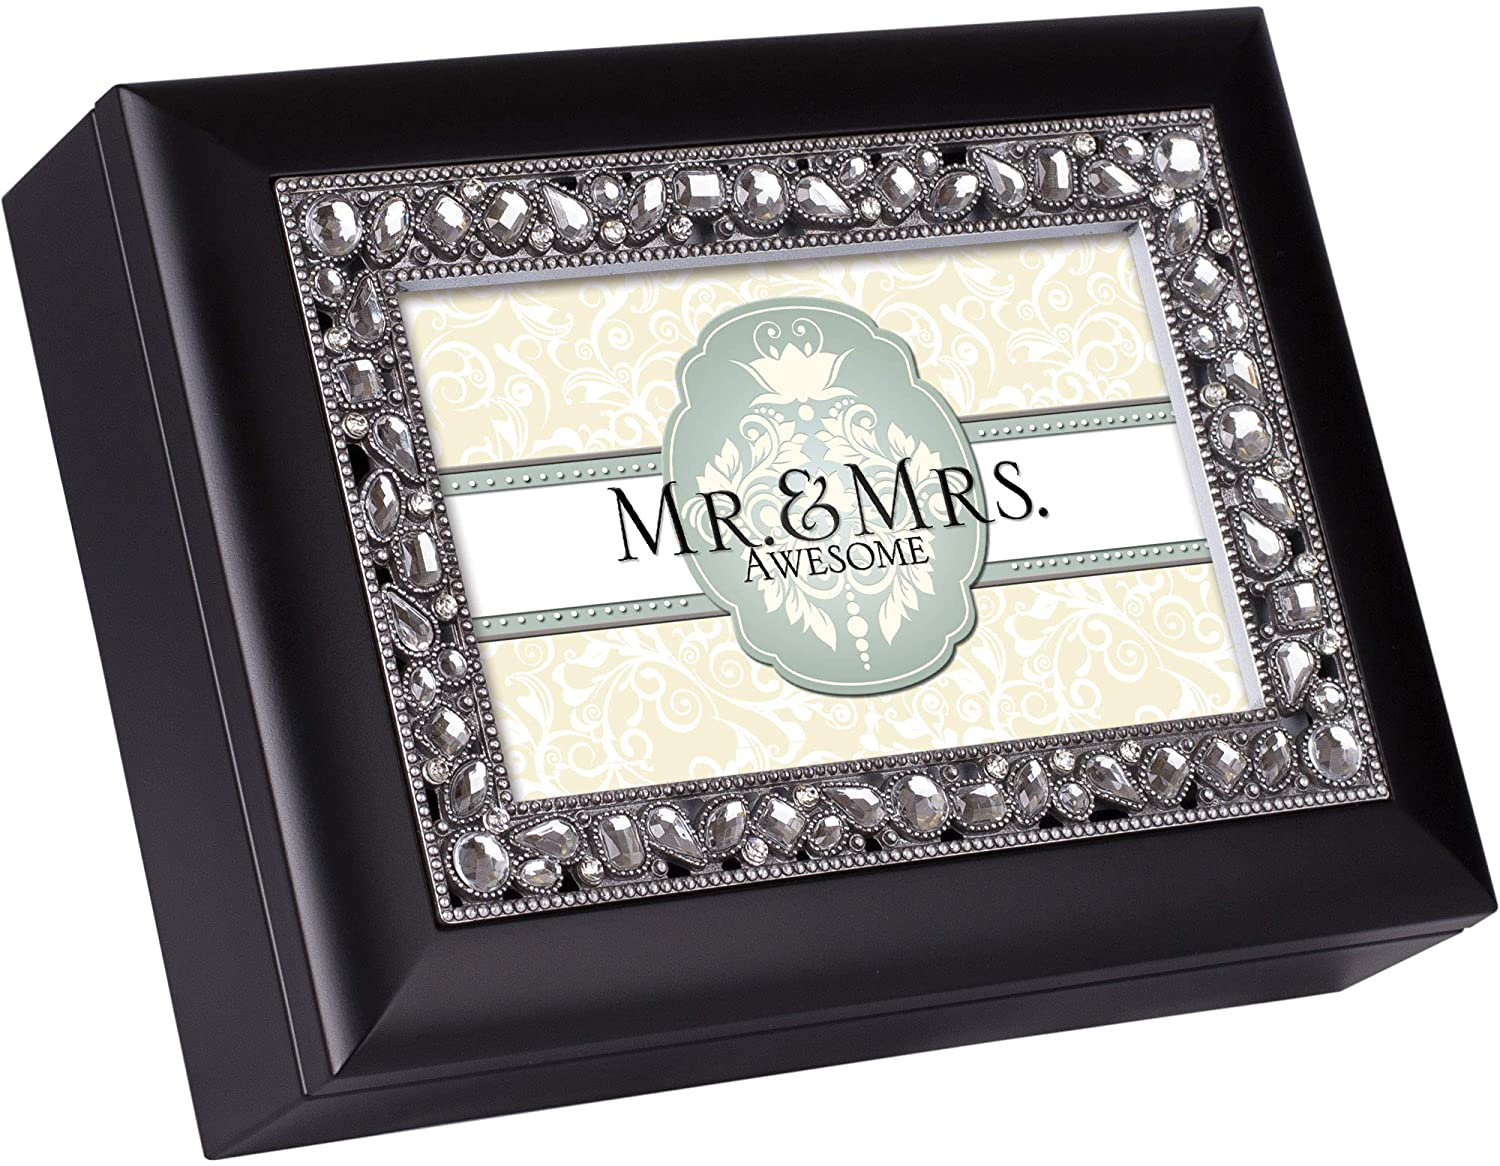 Cottage Garden Mr. & Mrs. Awesome Classic Black Clear Jeweled Music Box Play Wonderful World